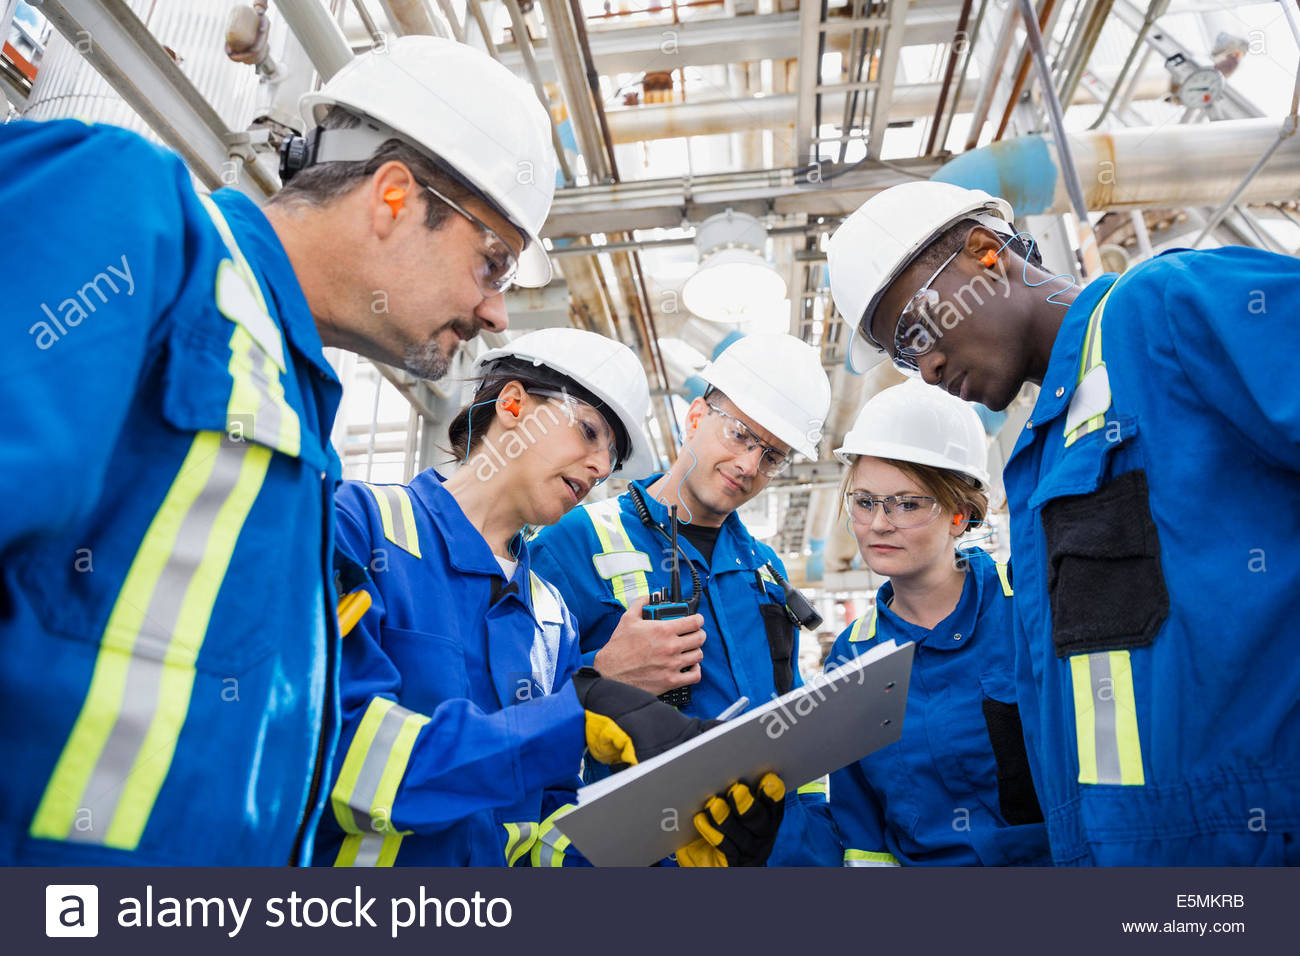 Workers meeting at gas plant - Stock Image